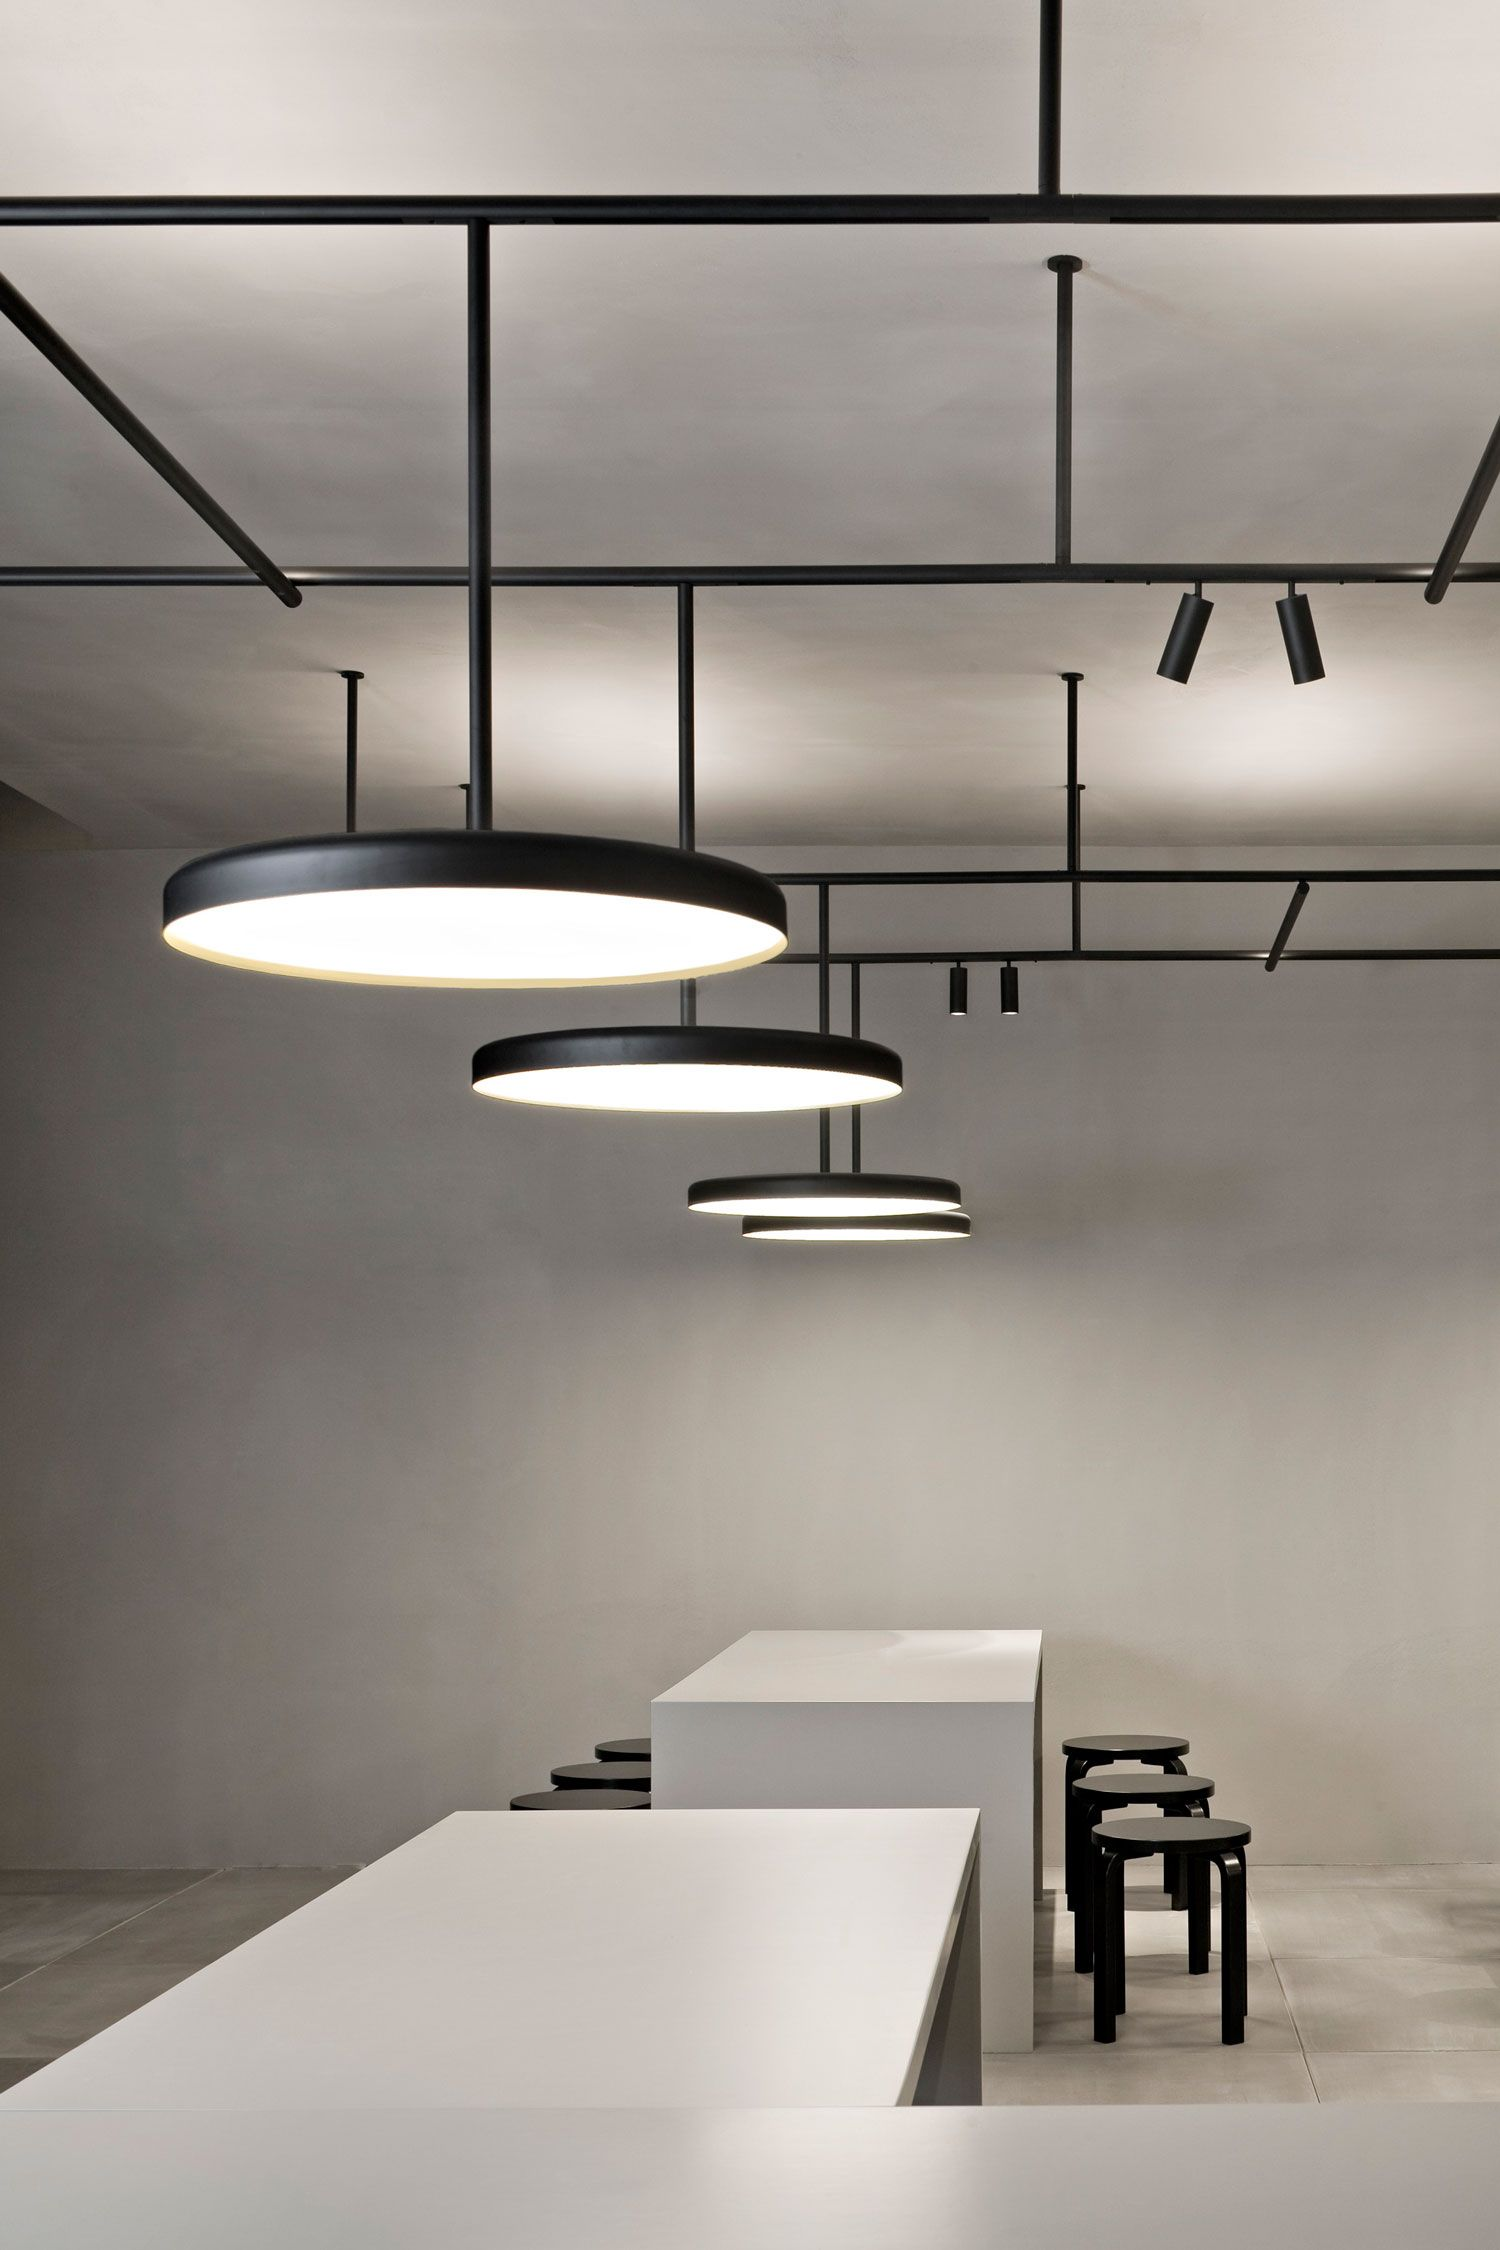 recessed pendant light hgtv replace into convert design bathrooms with rooms fixtures fixture interior a